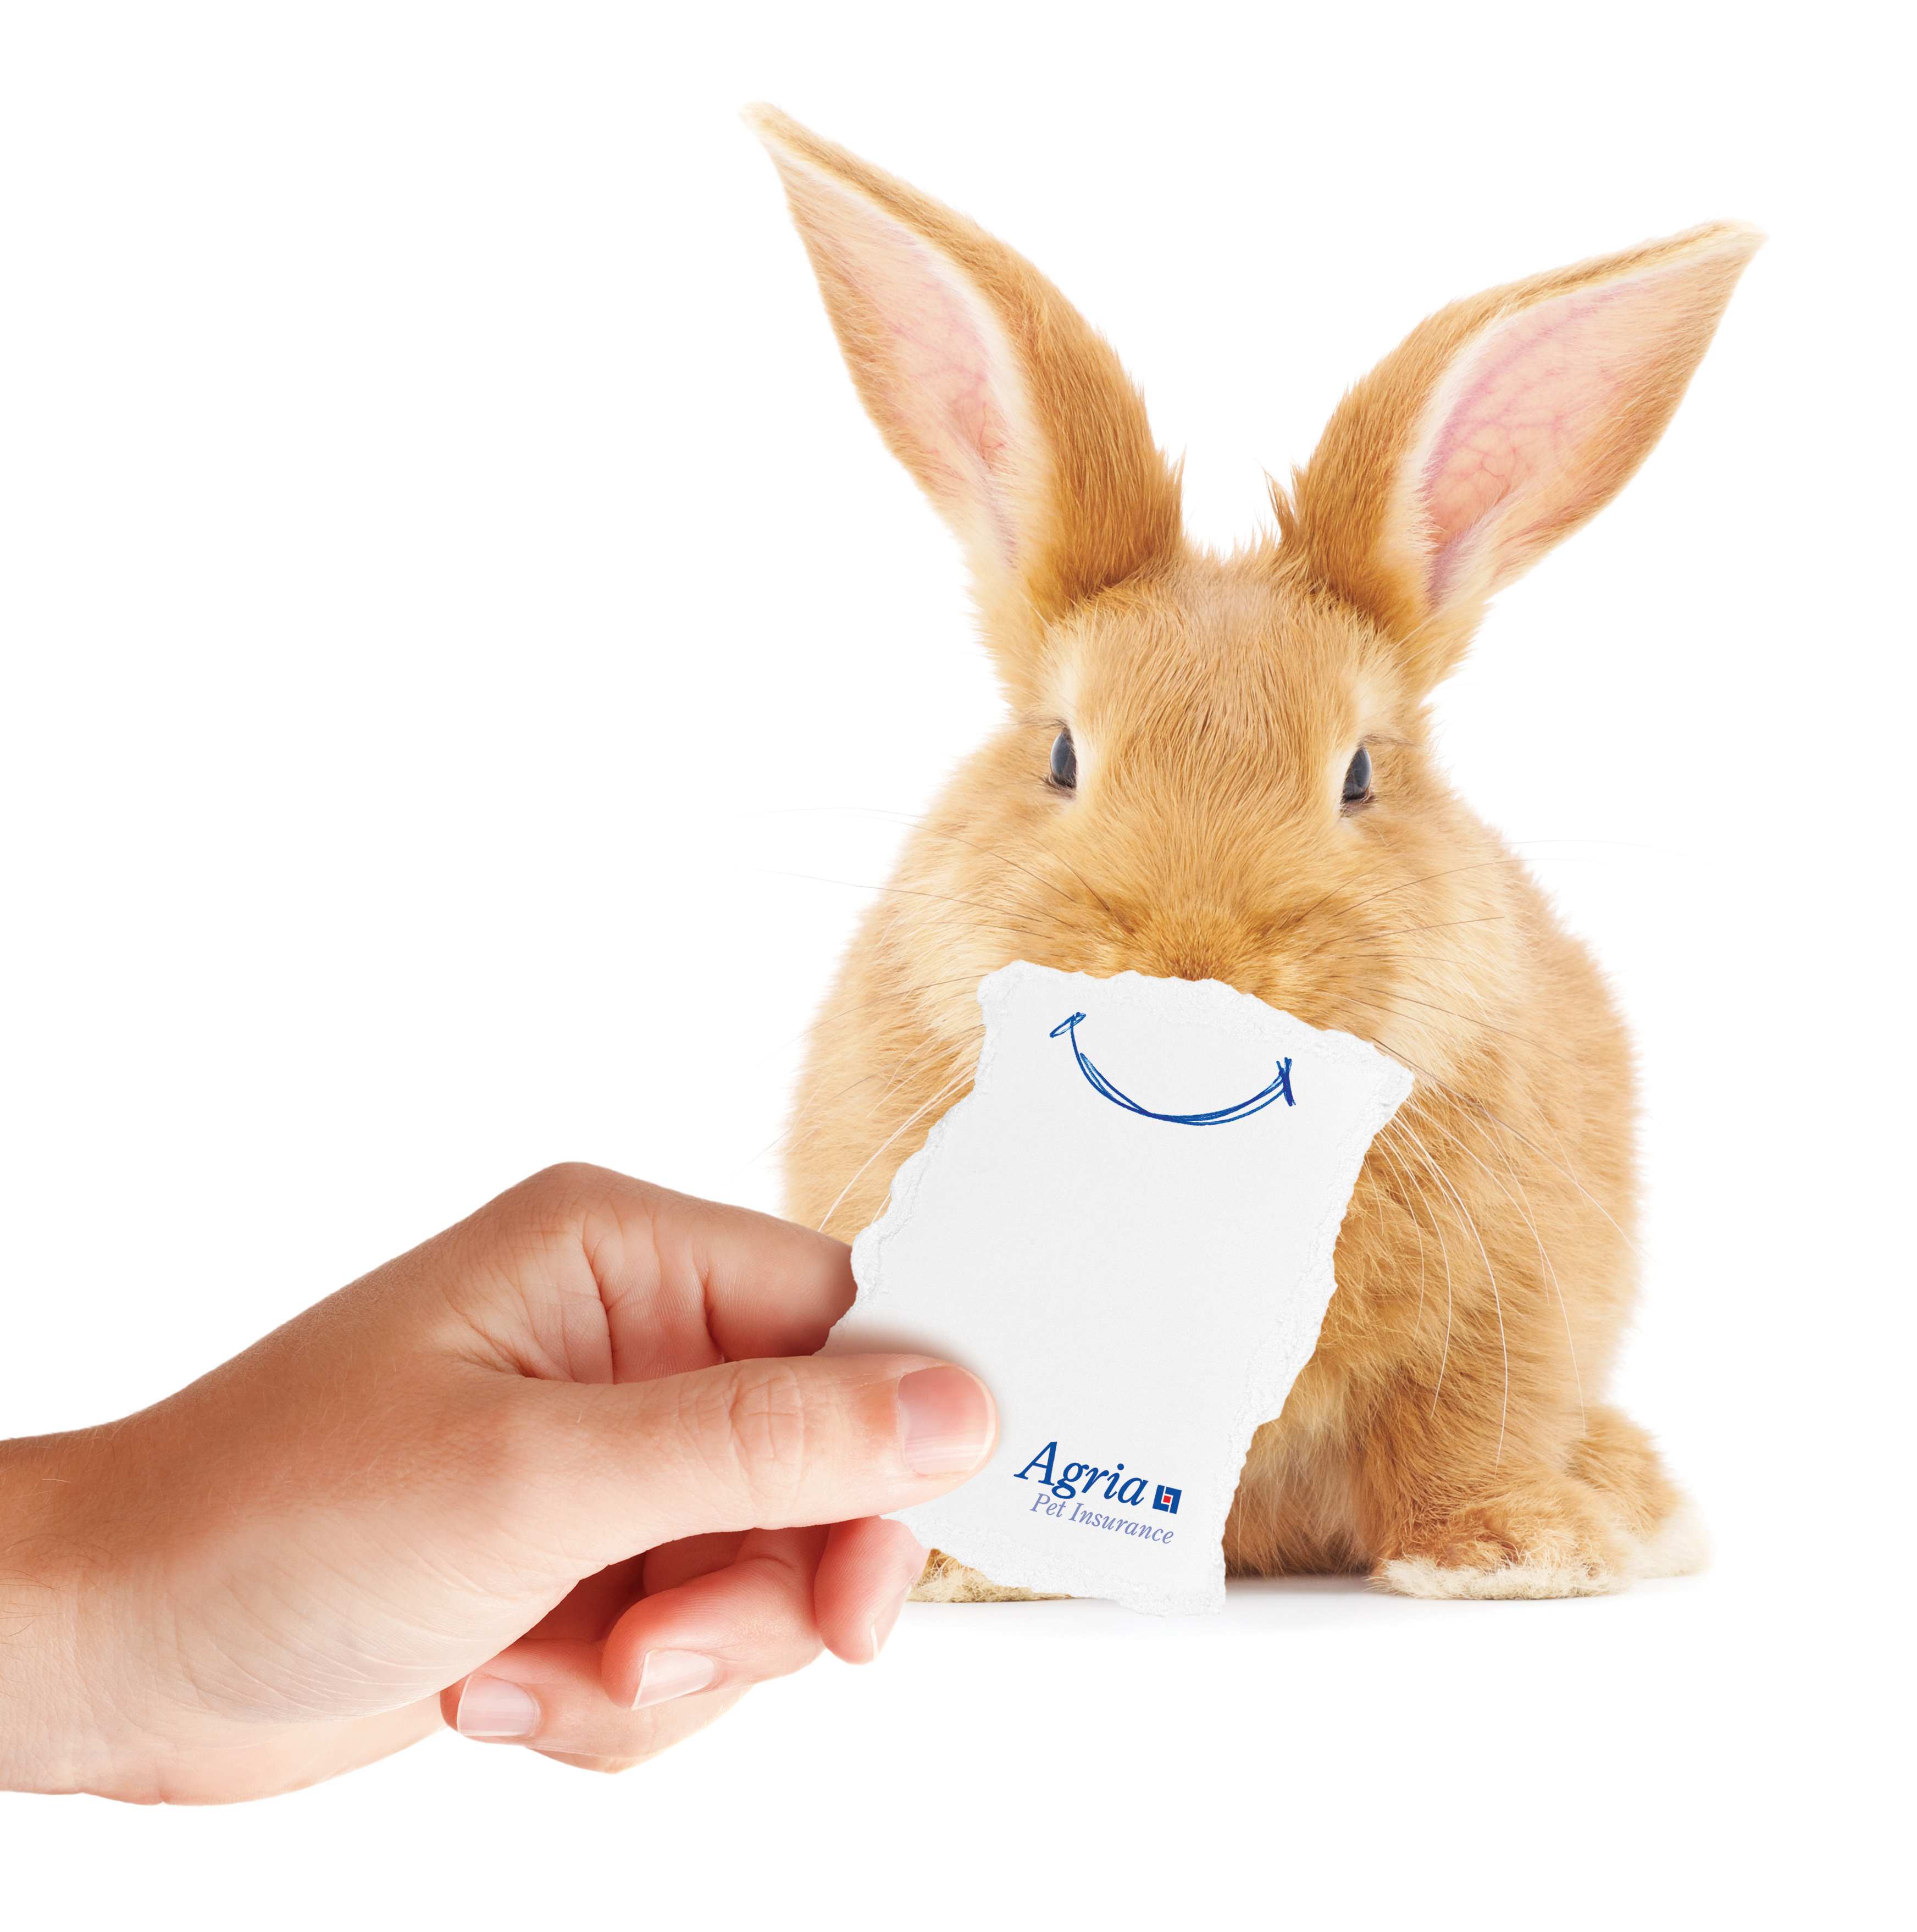 Carrot Insurance Number >> Agria talks rabbit insurance and offers £1000 CPD carrot at BSAVA congress - VetReport.net